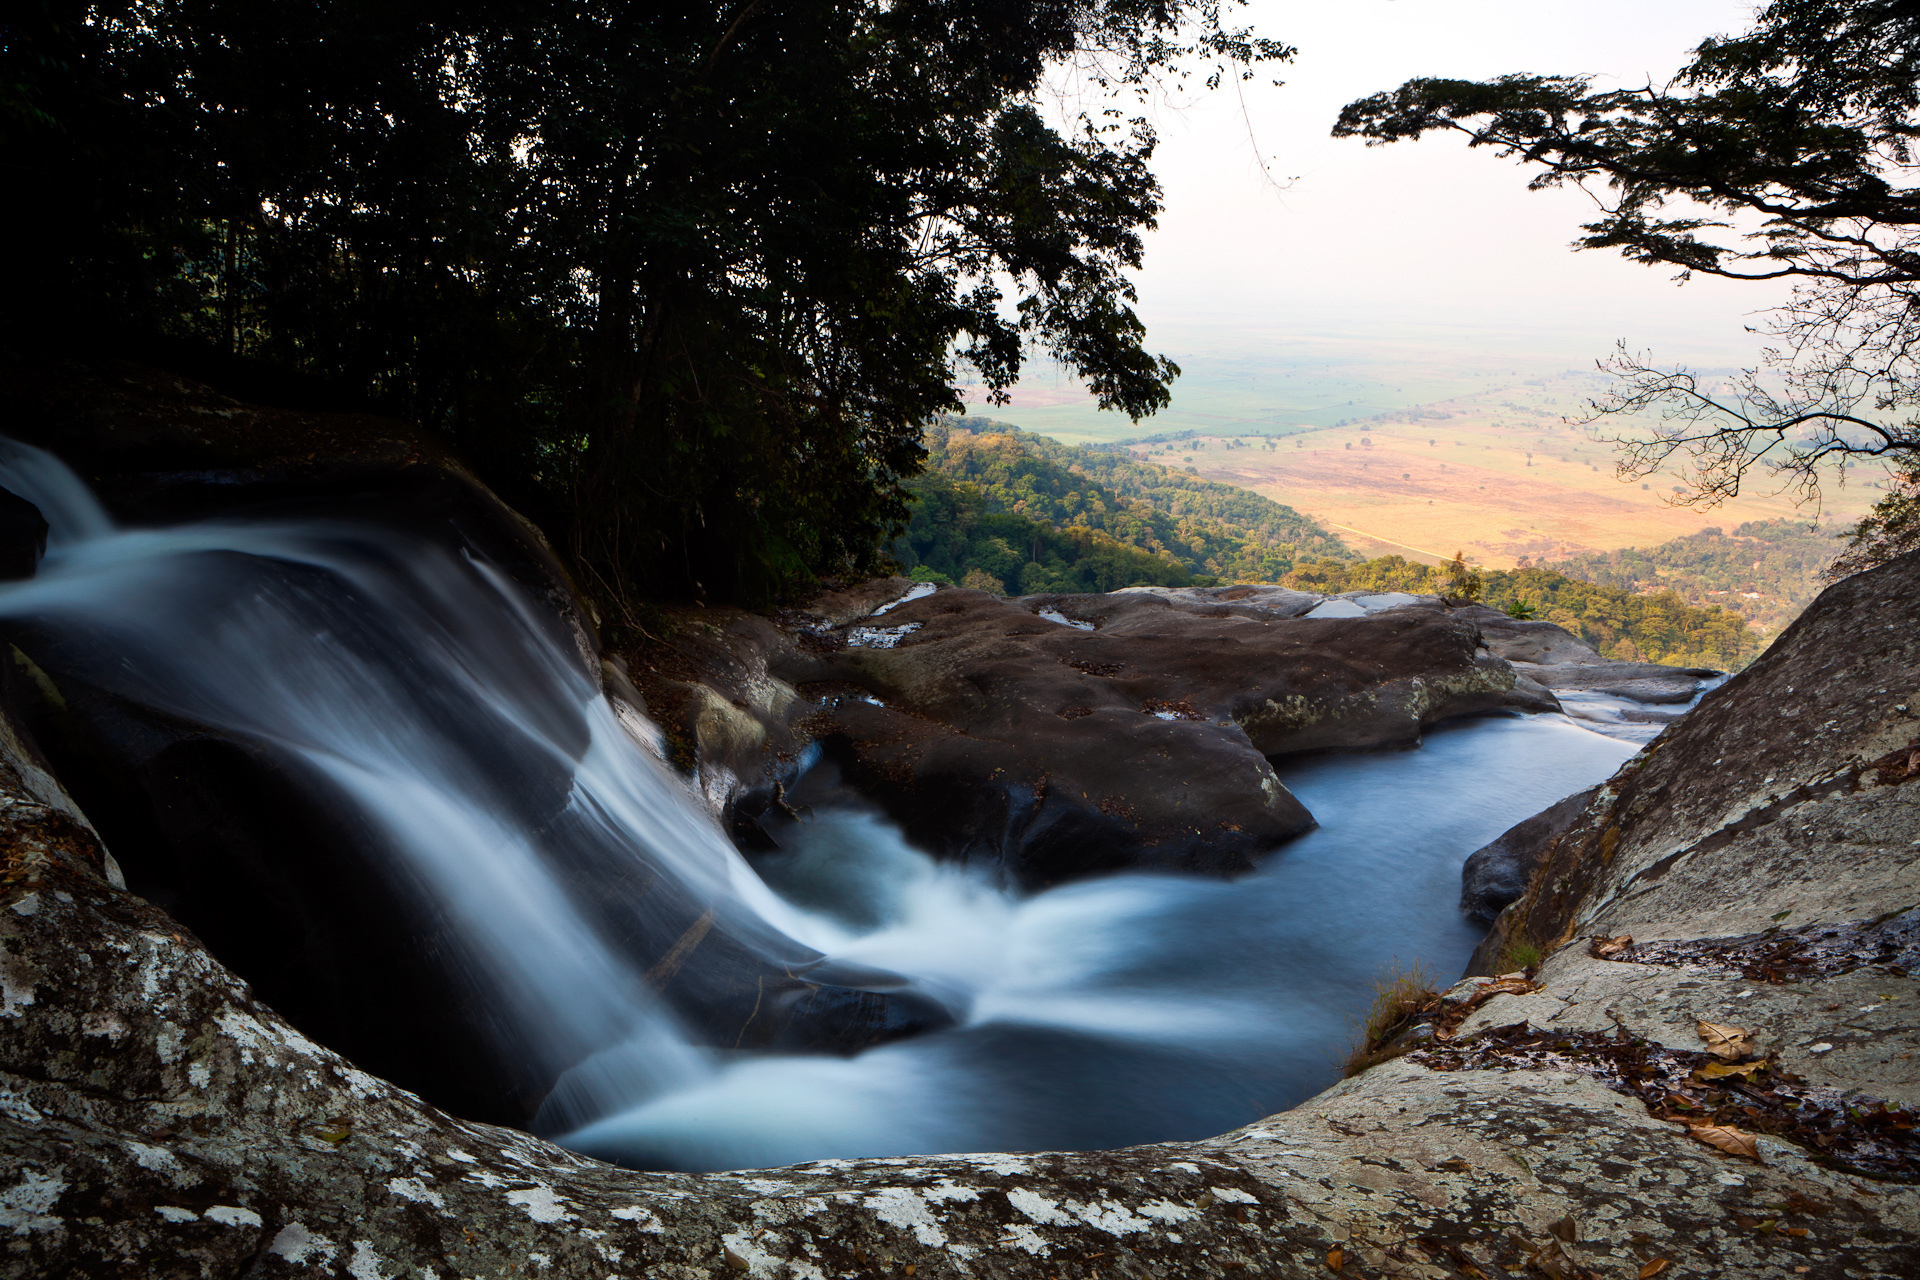 Sanje Waterfall in Udzungwa National Park, Tanzania, overlooks farmland that depends on its water.